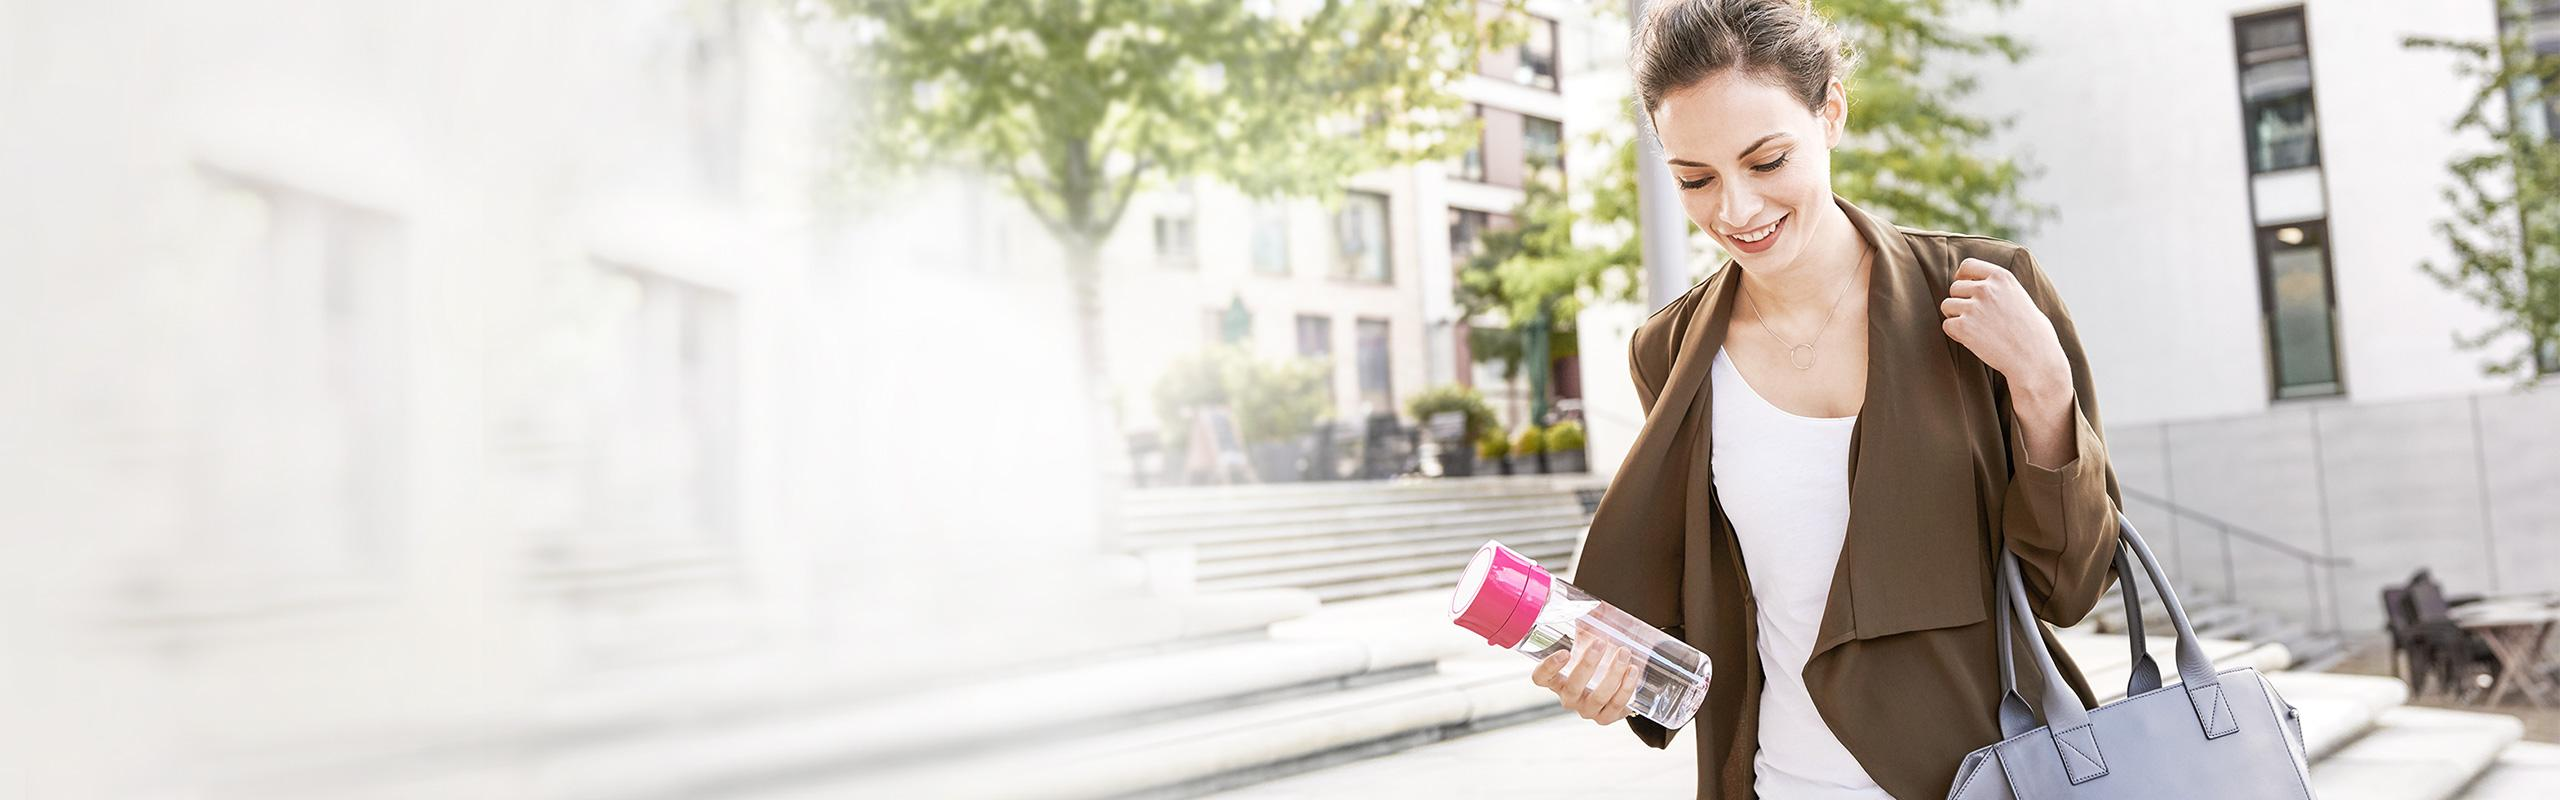 Woman with water filter bottle